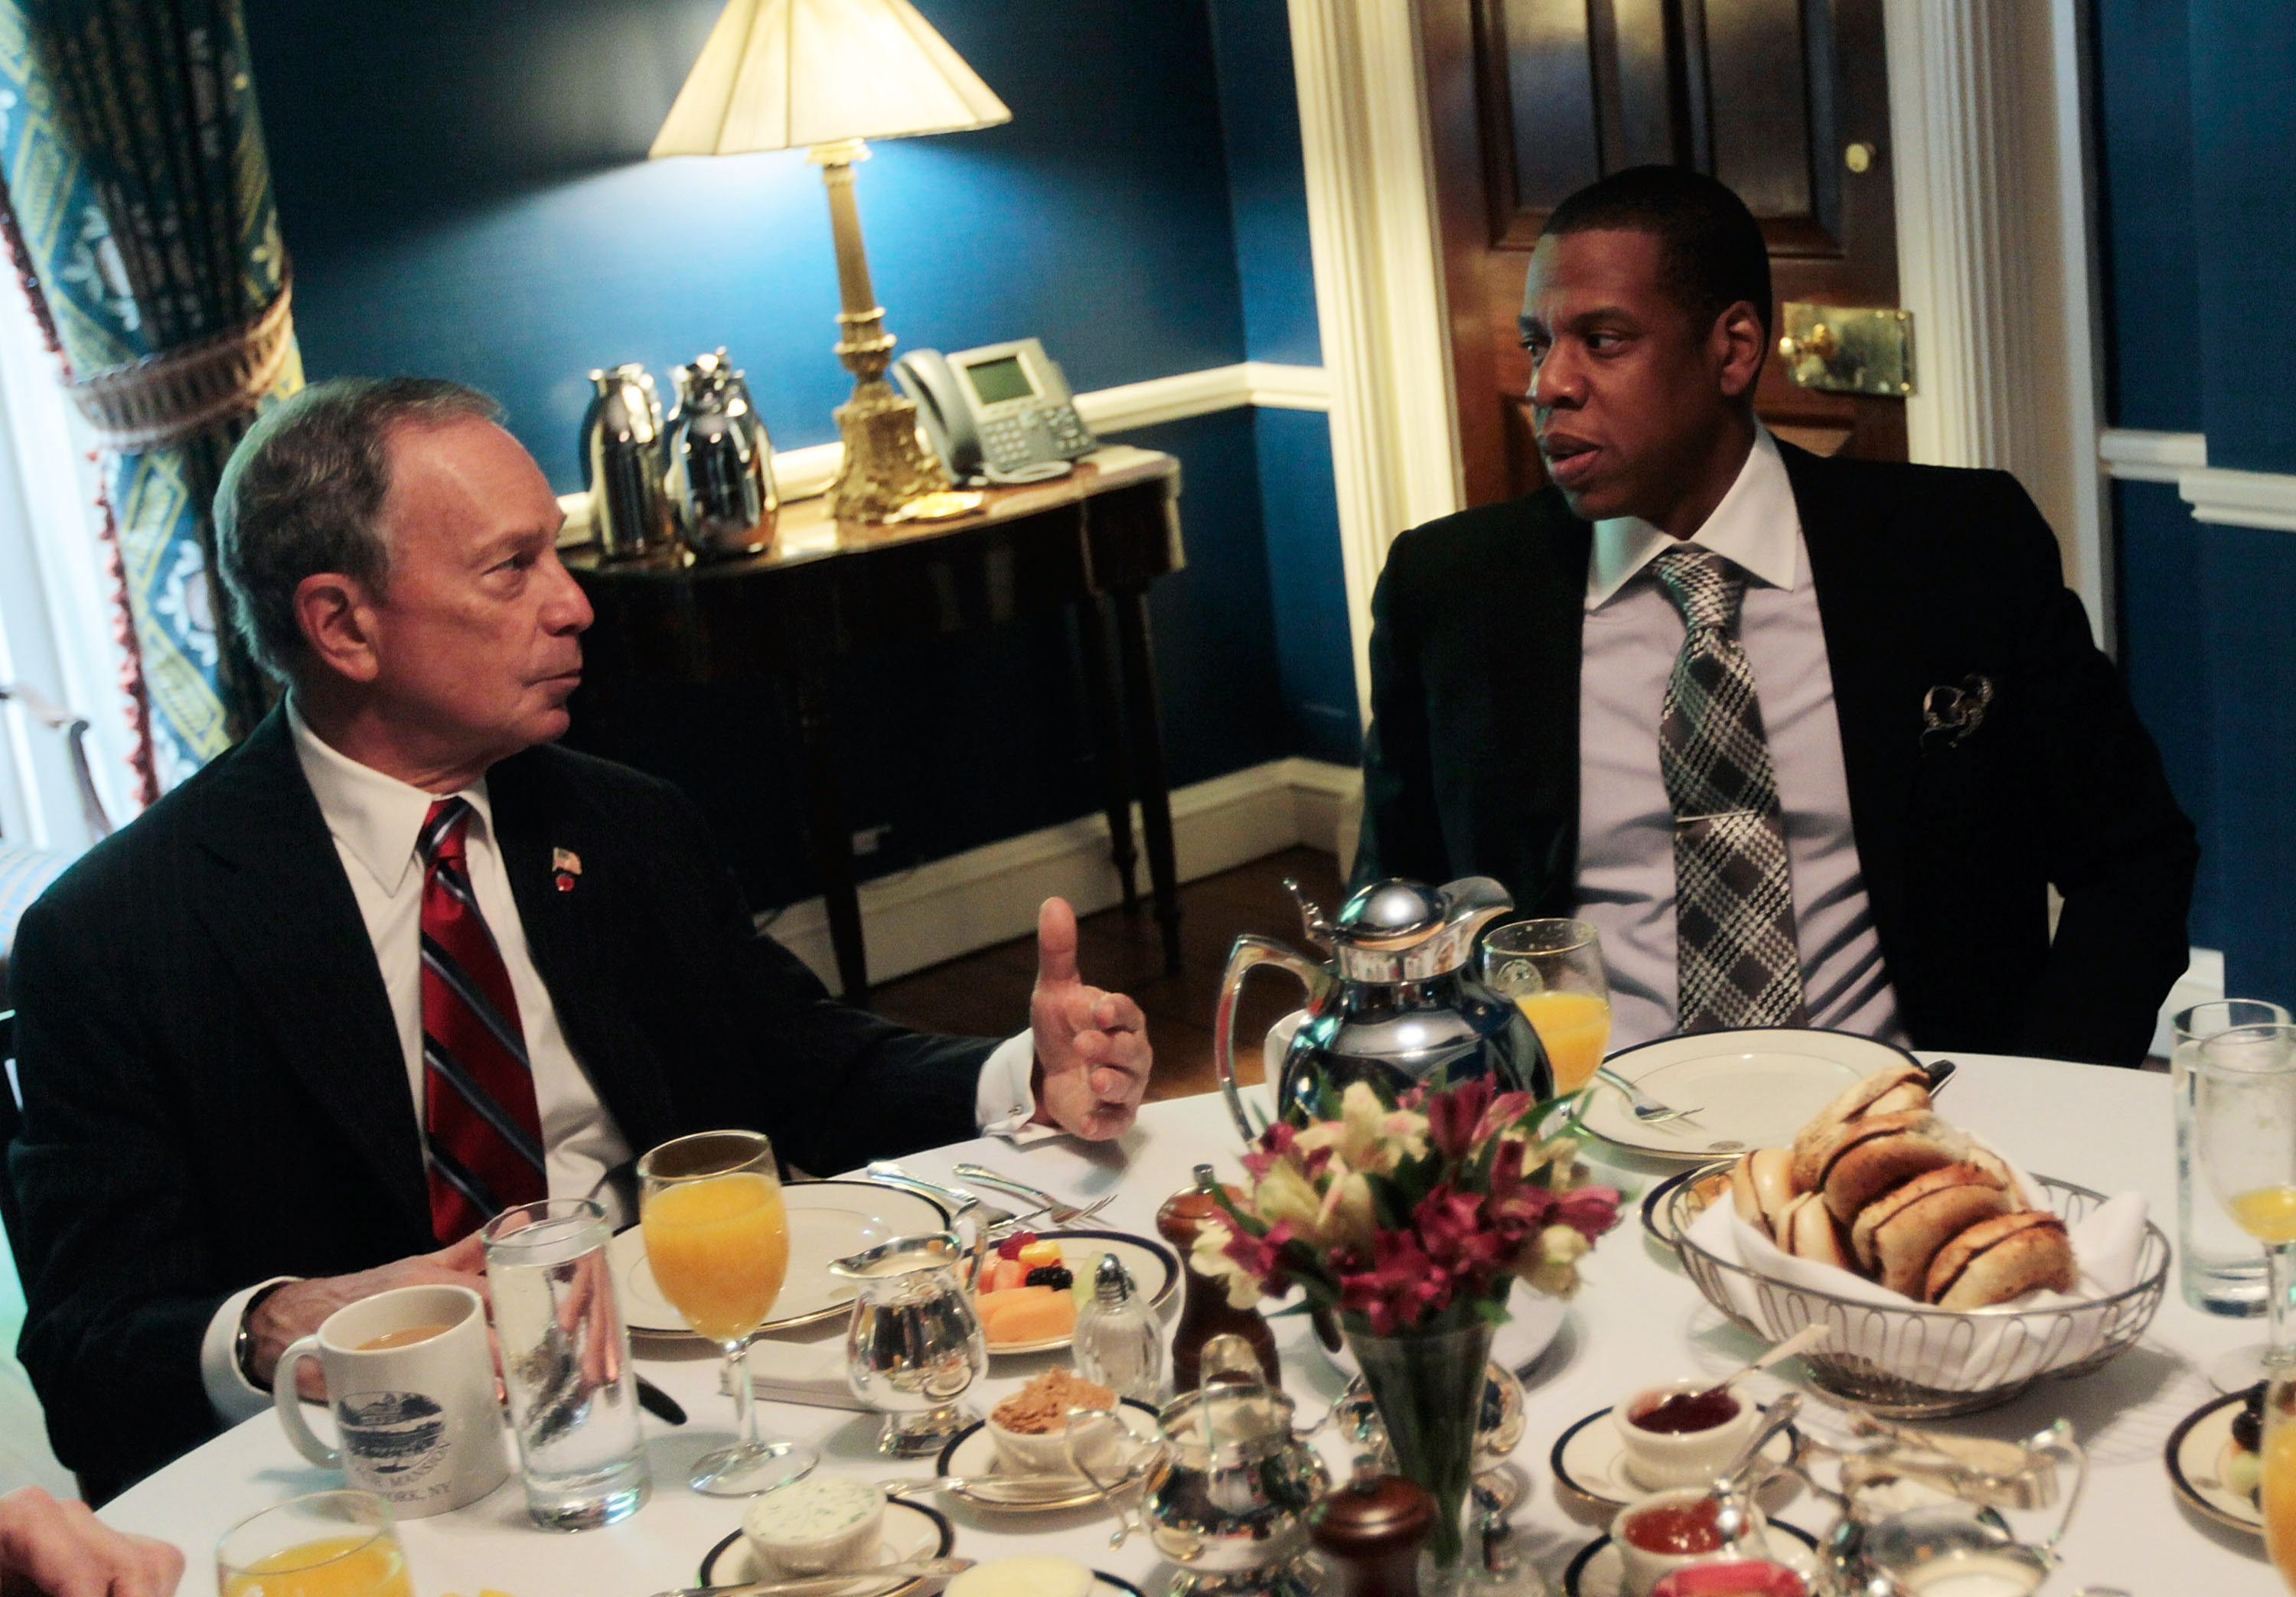 NEW YORK - MAY 19:  New York City Mayor Michael Bloomberg (L), and rapper and New Jersey Nets basketball team co-owner Shawn 'Jay-Z' Carter (R), attend a breakfast meeting at Gracie Mansion May 19, 2010 in New York City.  The rapper has been involved with